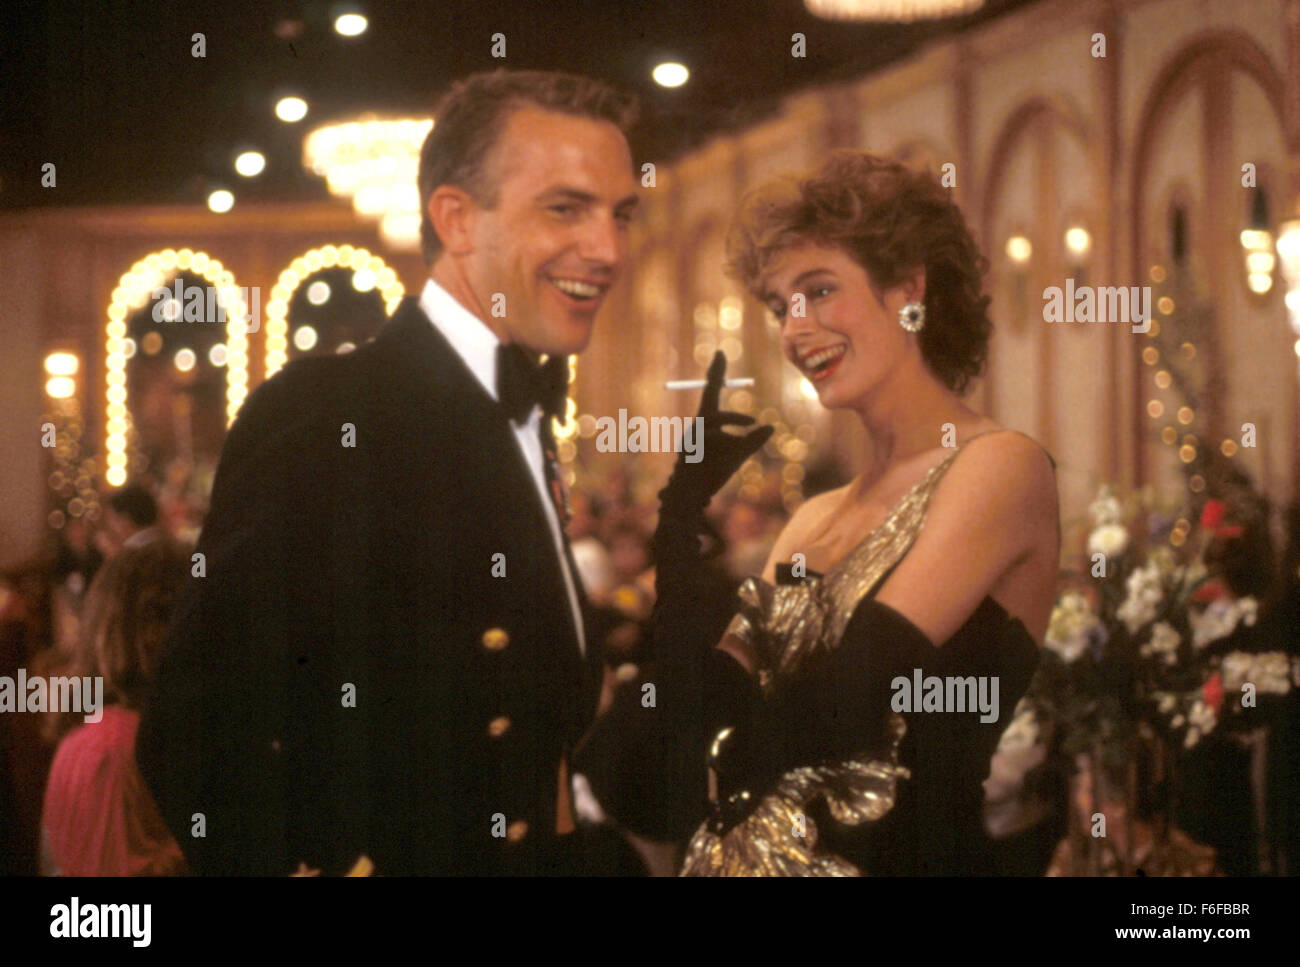 RELEASE DATE: Aug 14, 1987. MOVIE TITLE: No Way Out. STUDIO: Orion Pictures. PLOT: Tom Farrell is a navy officer - Stock Image